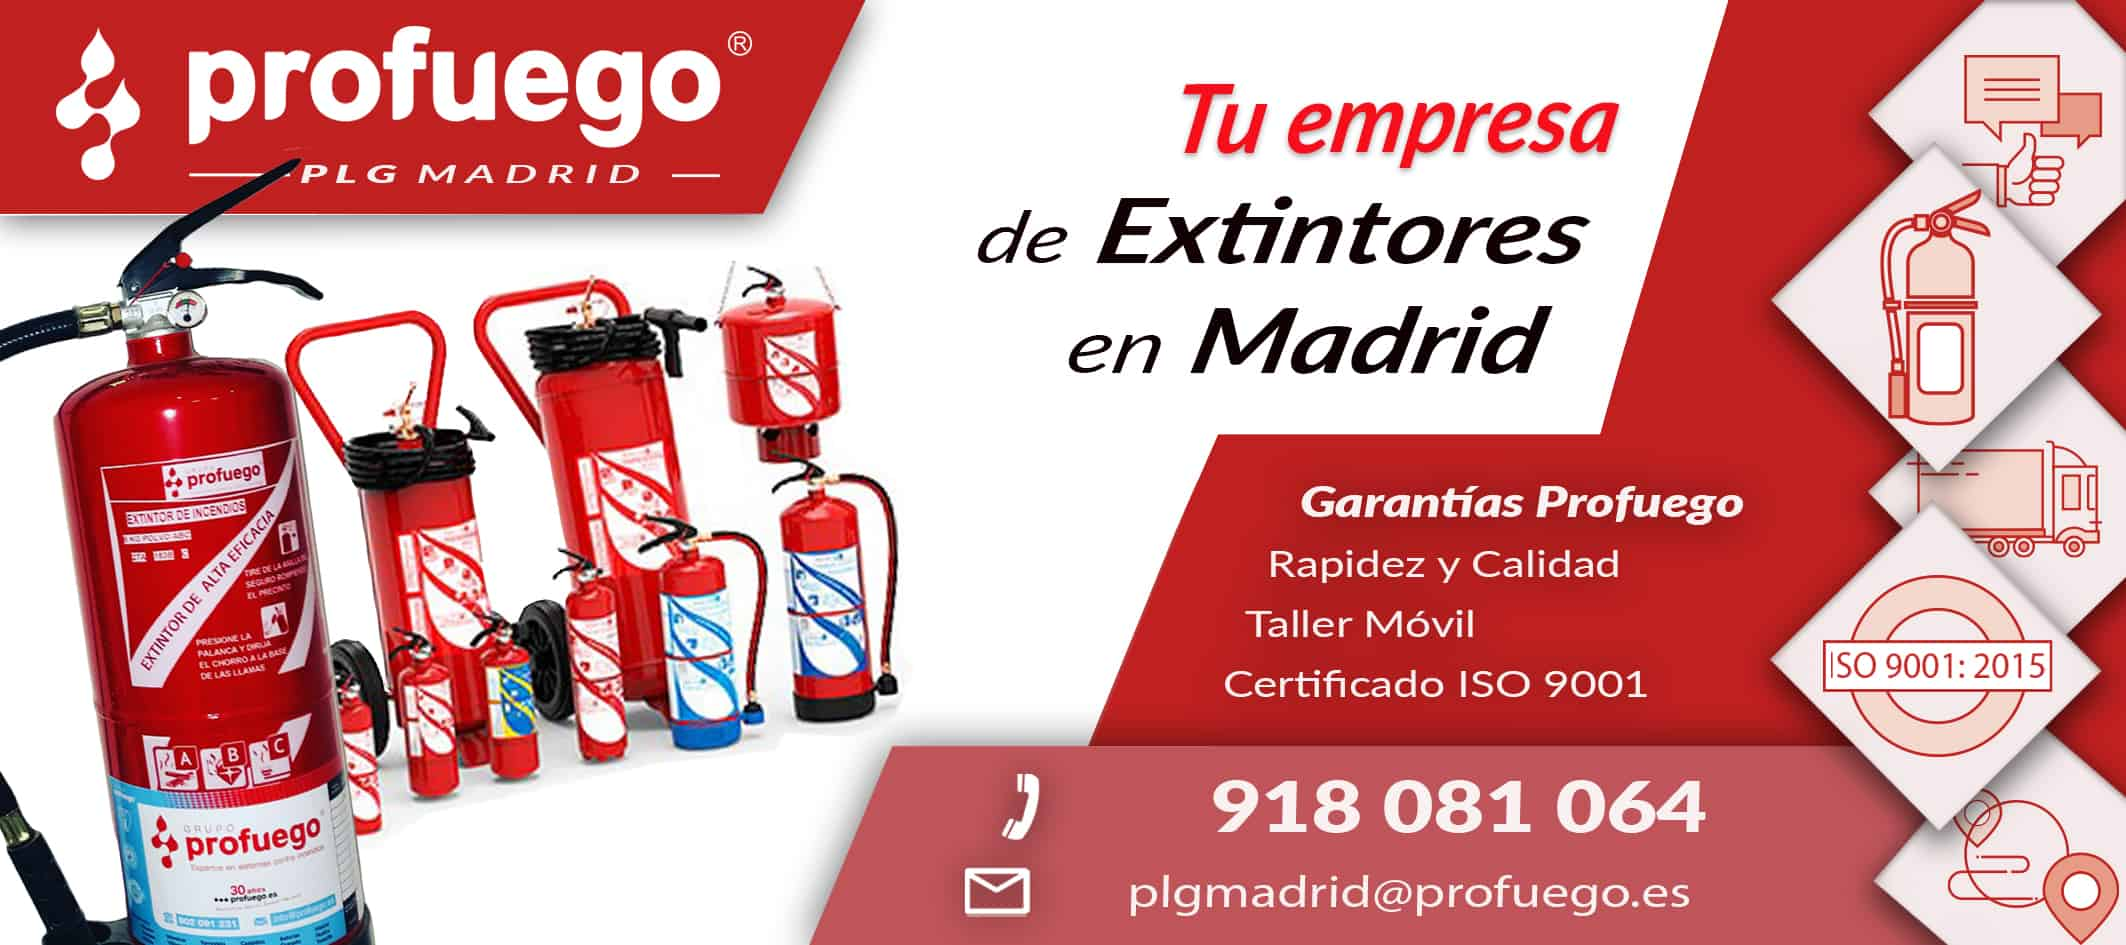 extintores plg madrid